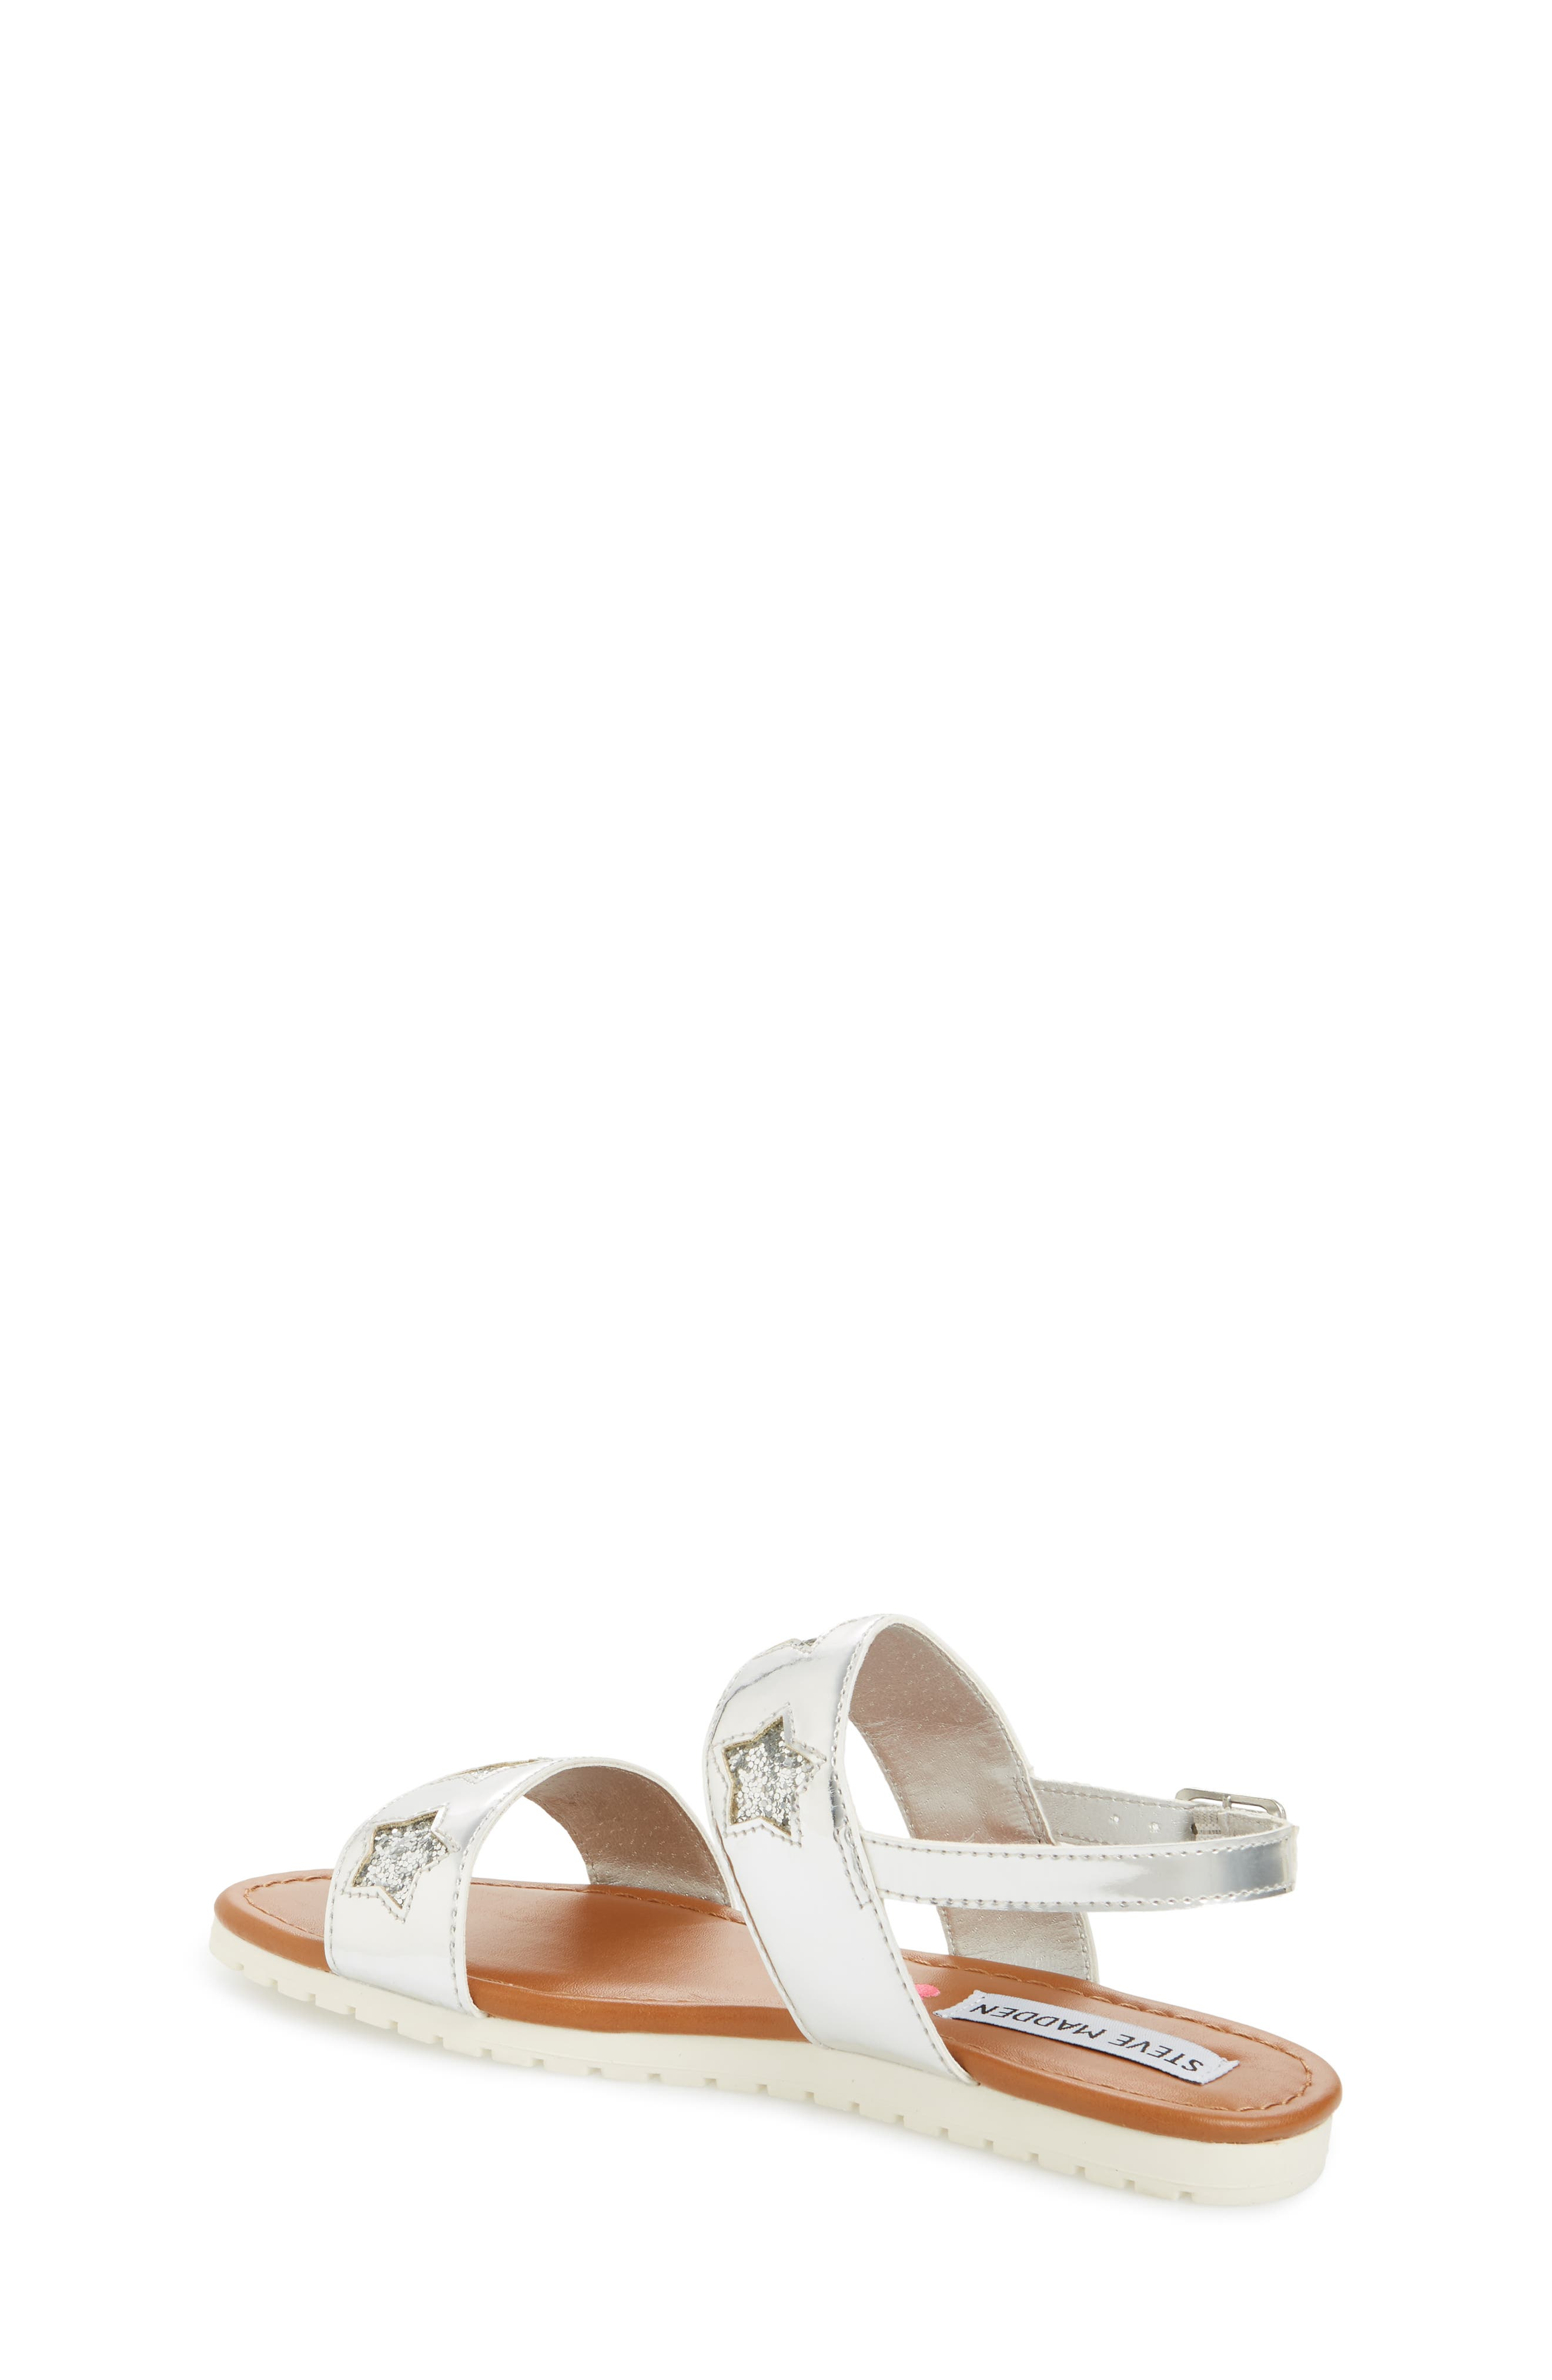 Adventure Glitter Sandal,                             Alternate thumbnail 2, color,                             SILVER